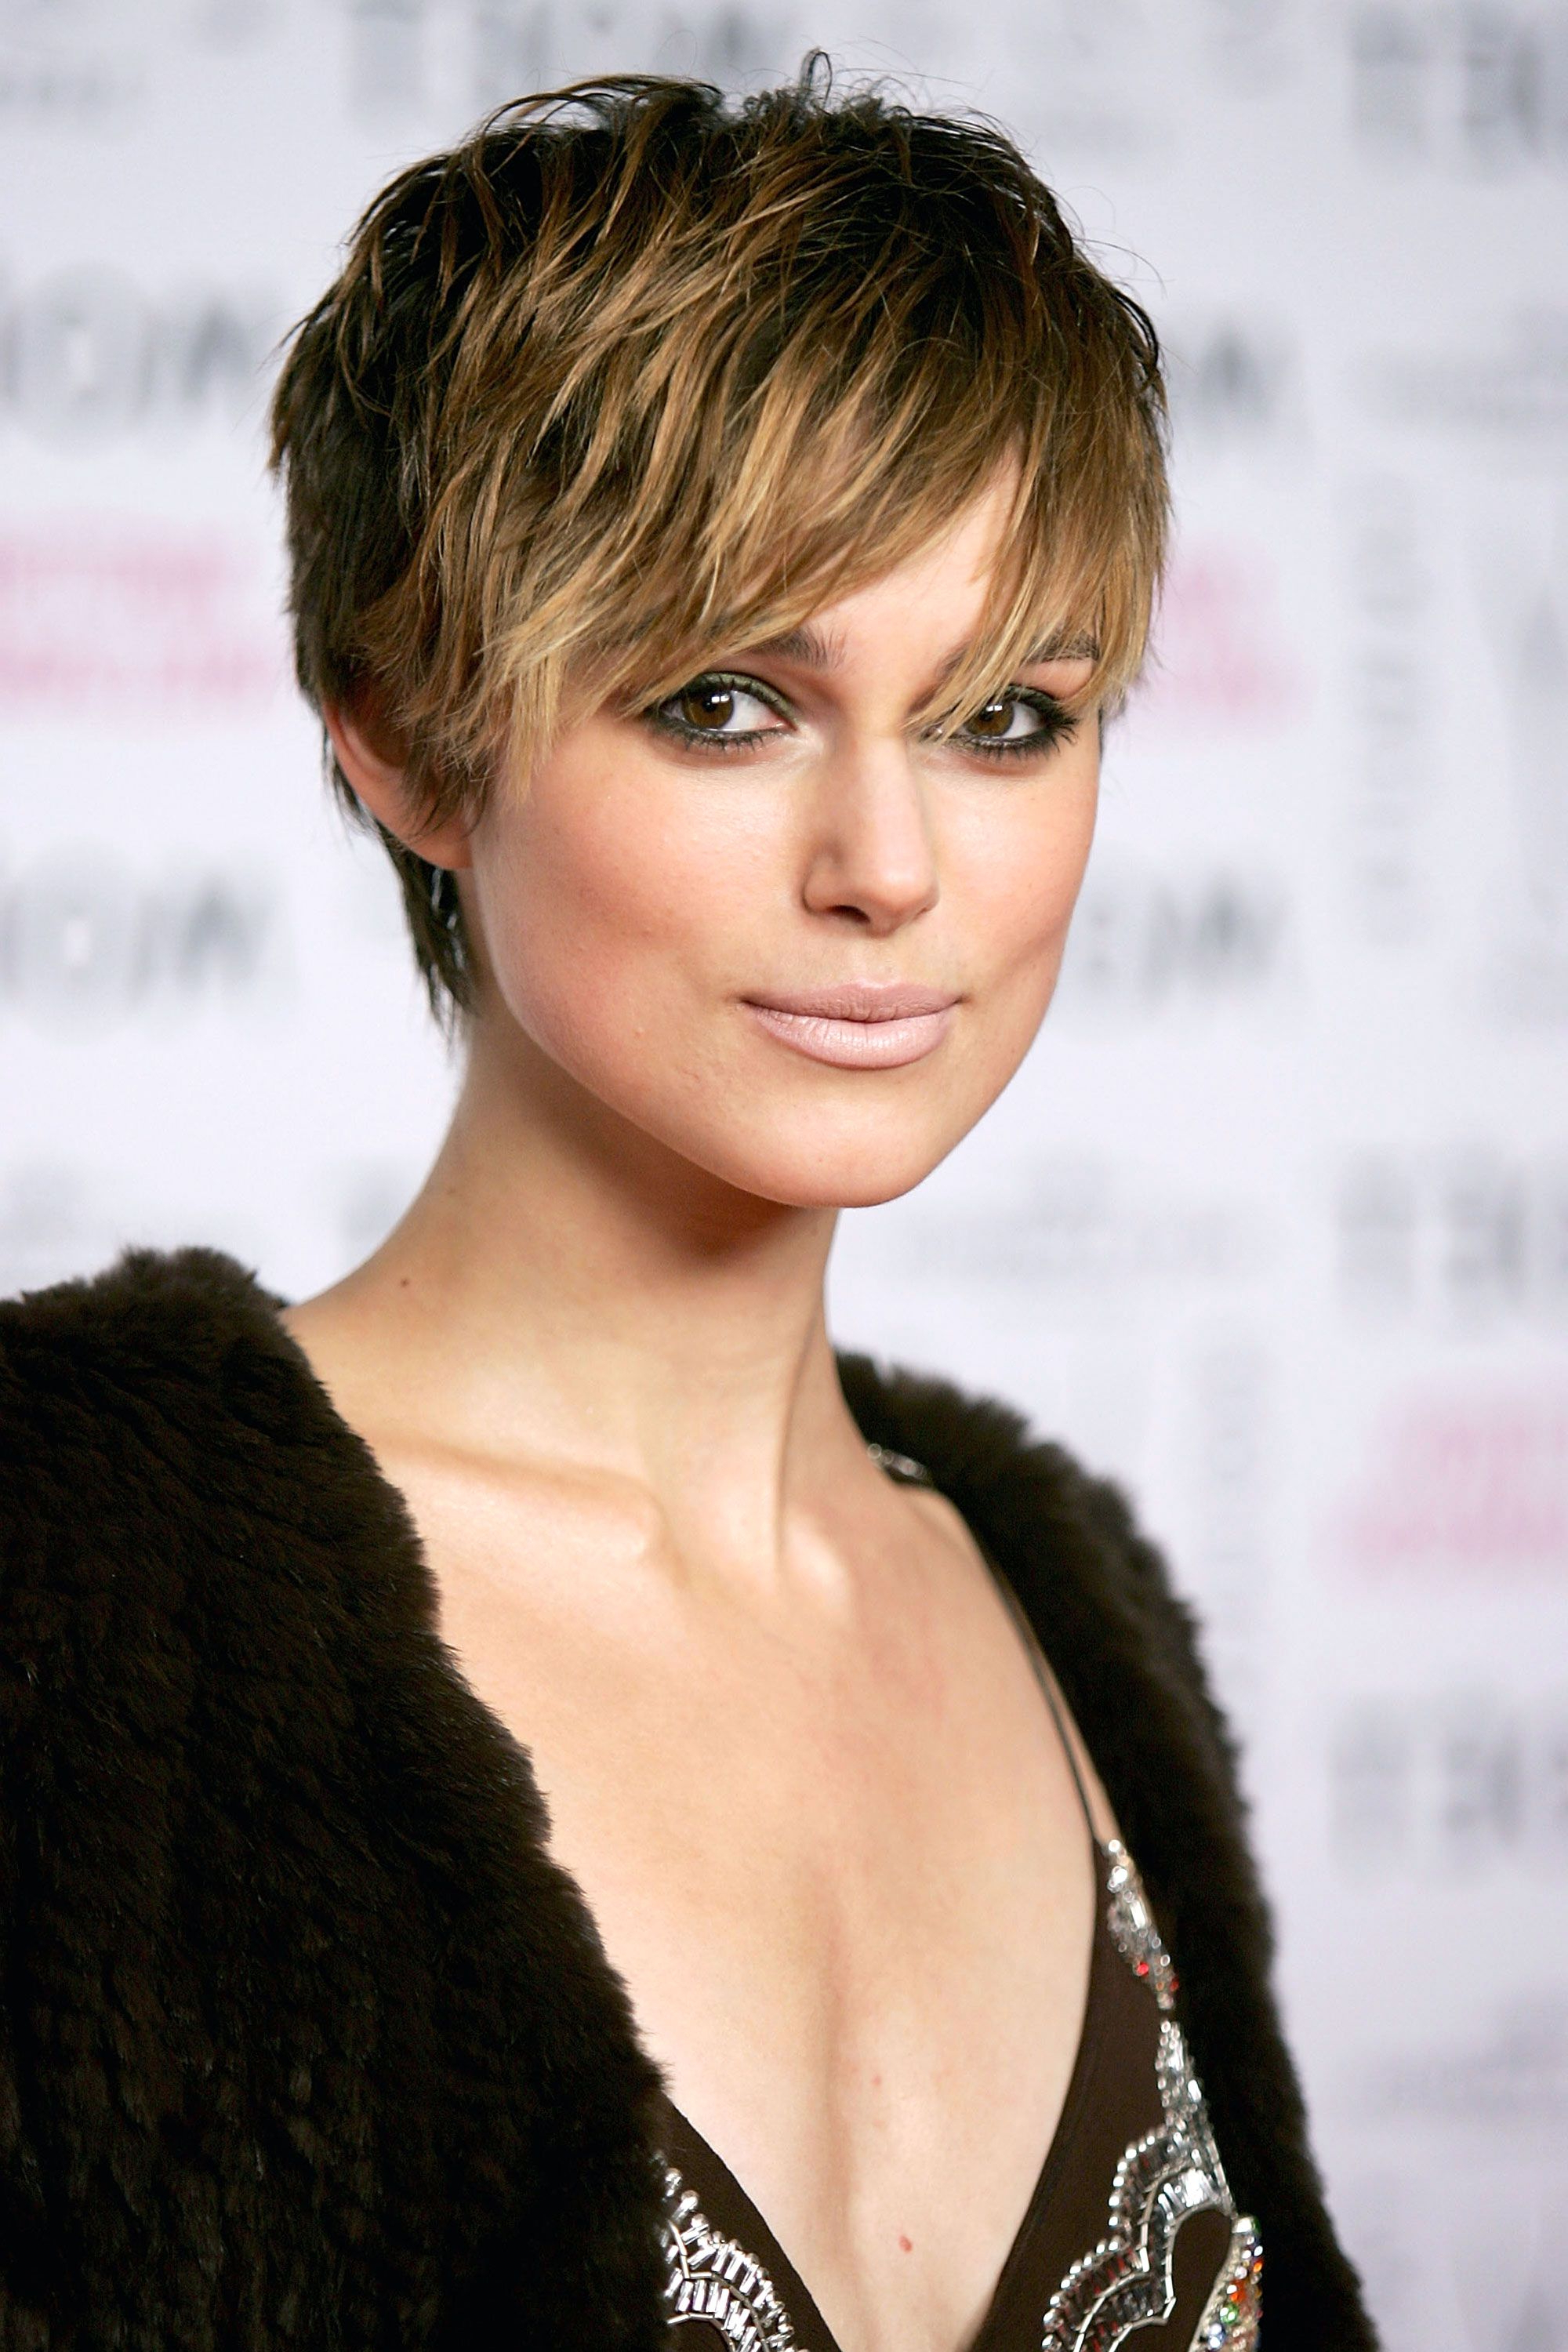 50+ Pixie Cuts We Love For 2018 – Short Pixie Hairstyles From For Short Trendy Hairstyles For Women (View 17 of 25)